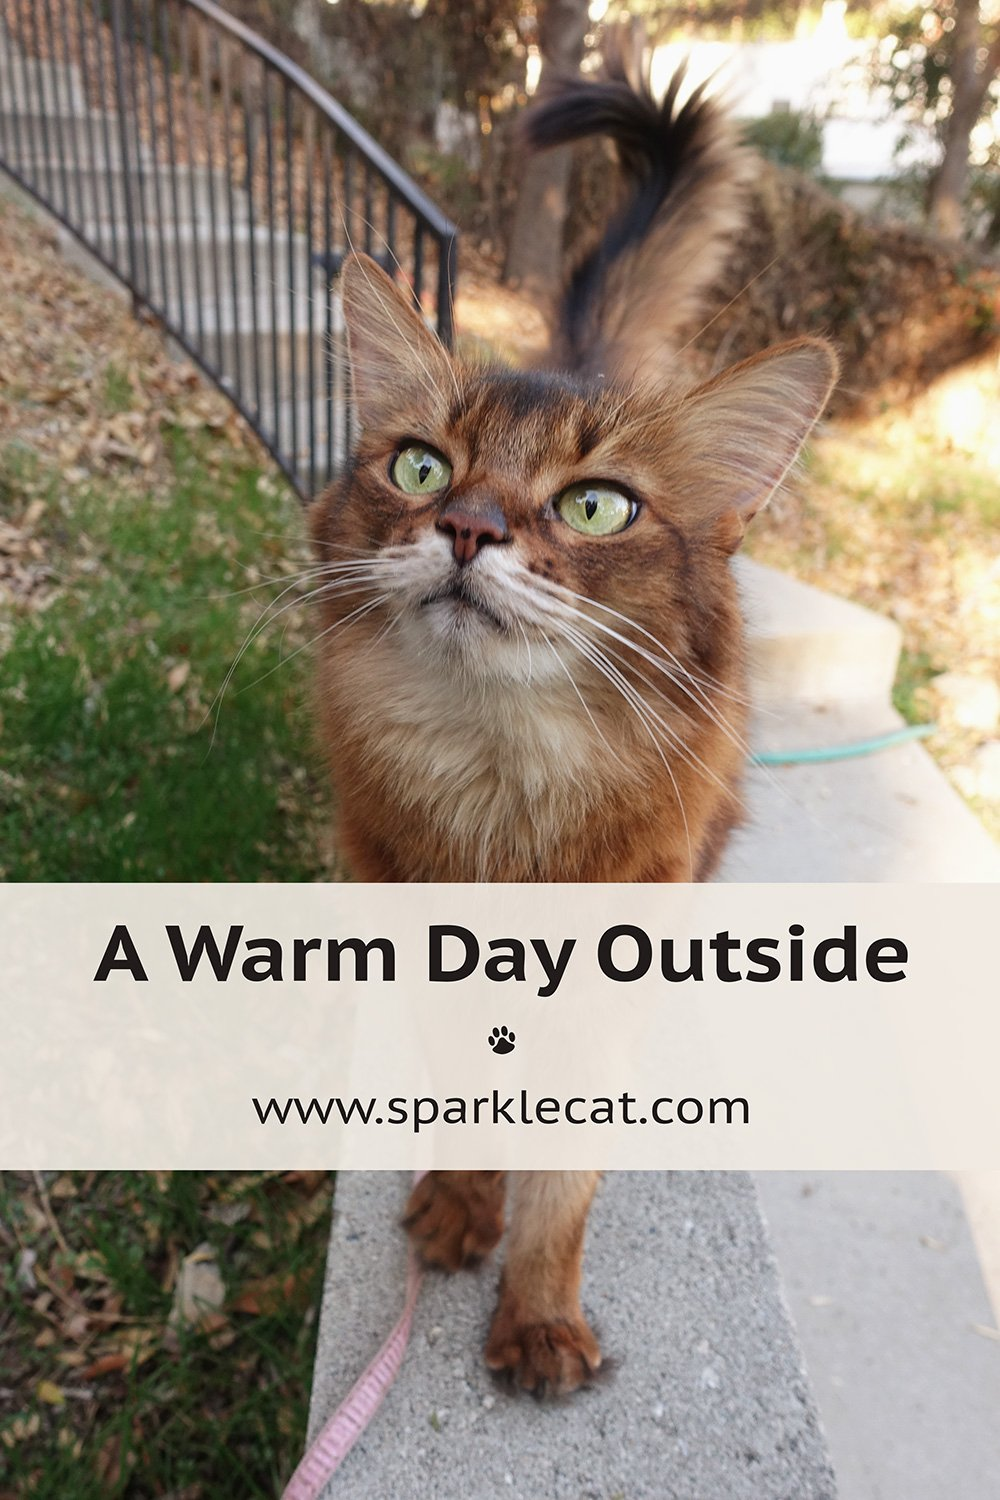 A Warm Day Outside